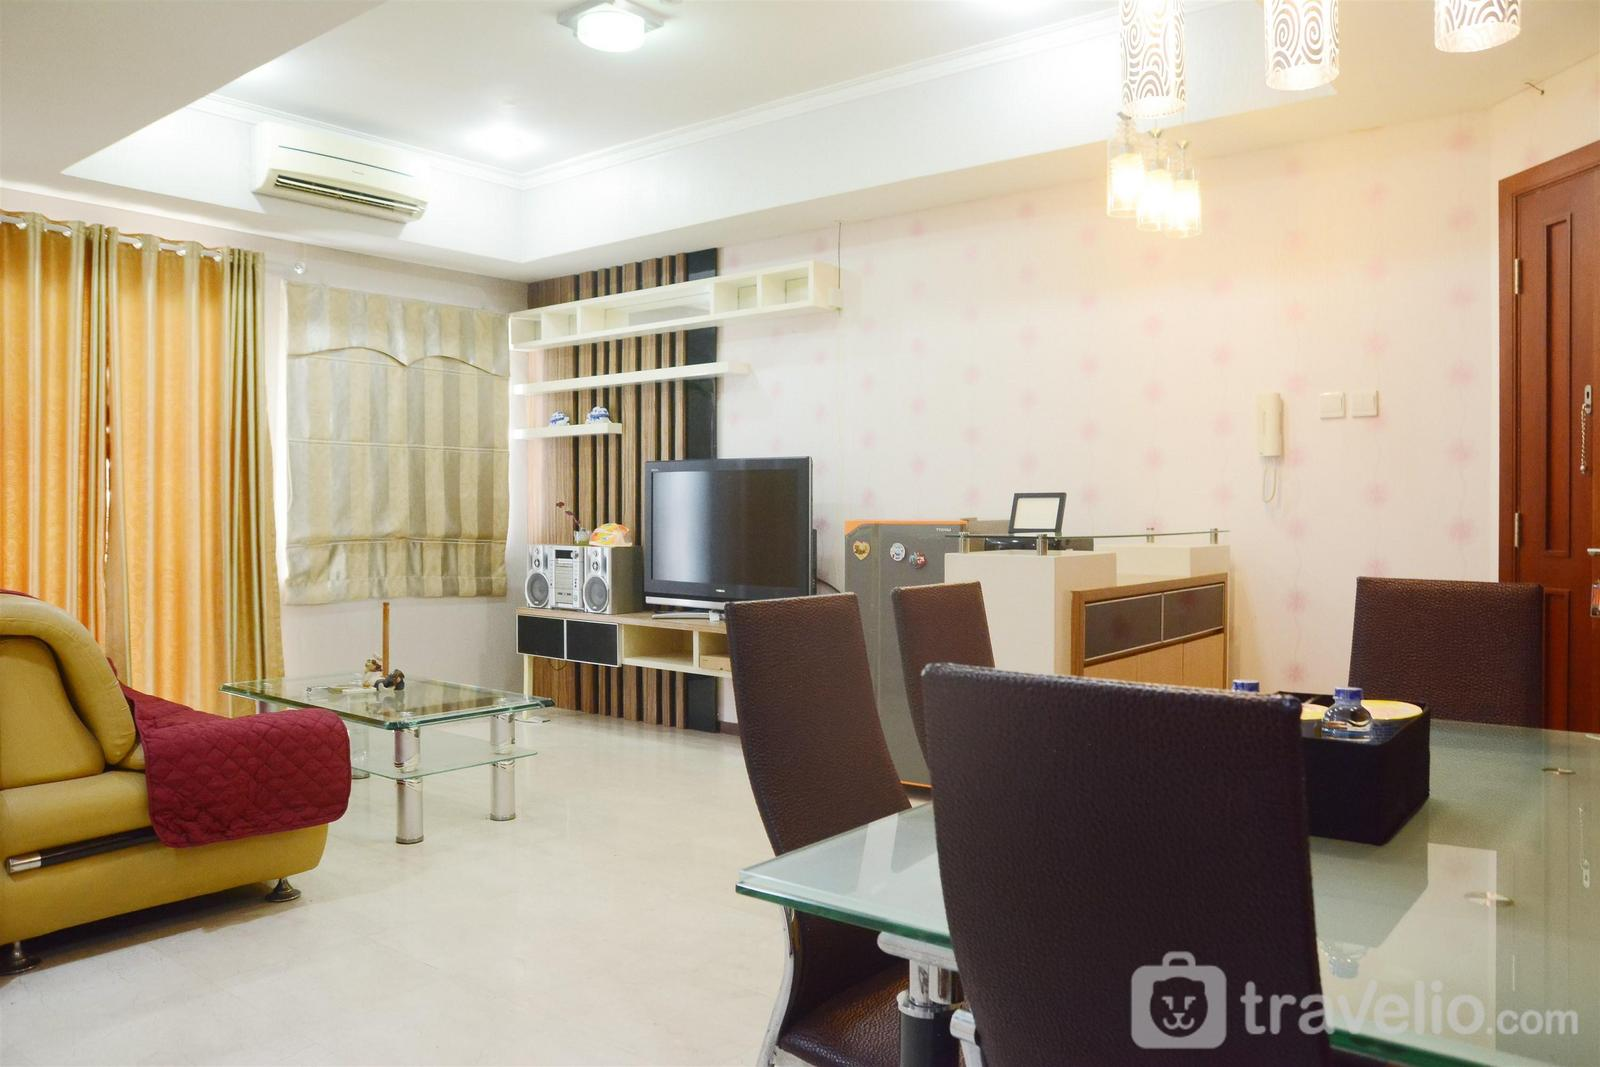 Royal Mediterania Garden - 2BR Royal Mediterania Garden Residence near Central Park Mall By Travelio